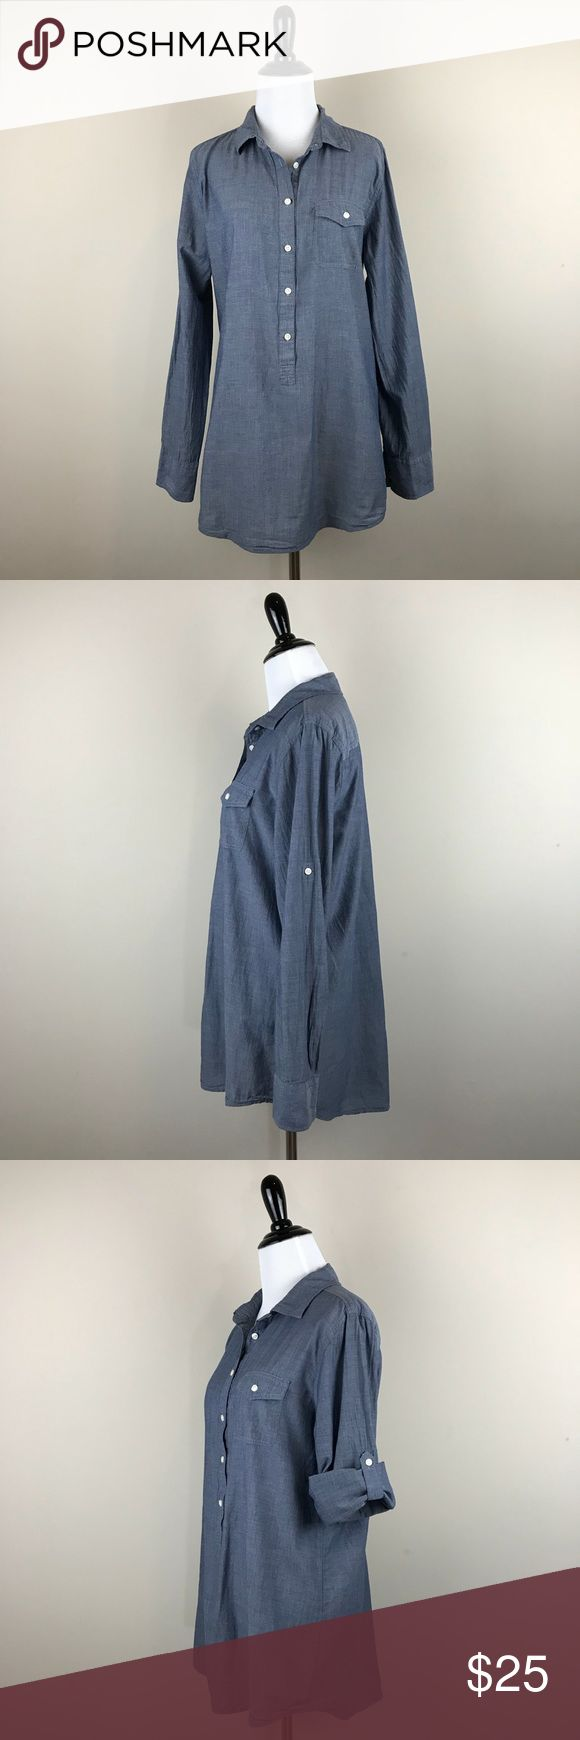 """J. Crew Chambray Popover Tunic J. Crew Chambray Popover Tunic Size Medium Roll Tab Sleeve Chest Pocket Materials: 100% cotton Pre-owned in excellent condition!  Measurements taken laying flat: underarm to underarm- 20.5"""" center back length- 31""""  Location- E11 J.Crew Factory Tops Tunics"""